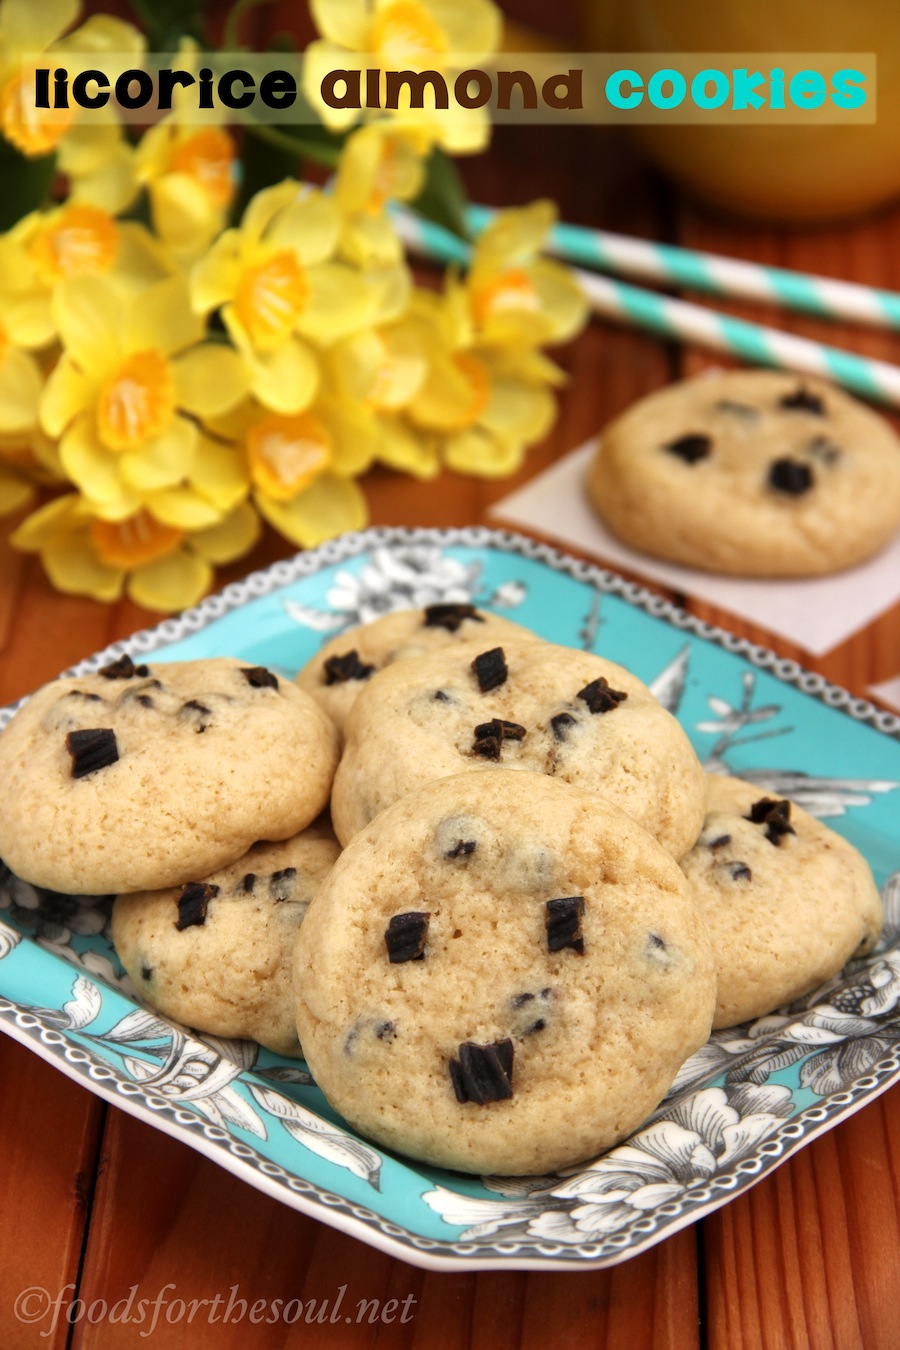 Licorice Almond Cookies | by Foods for the Soul